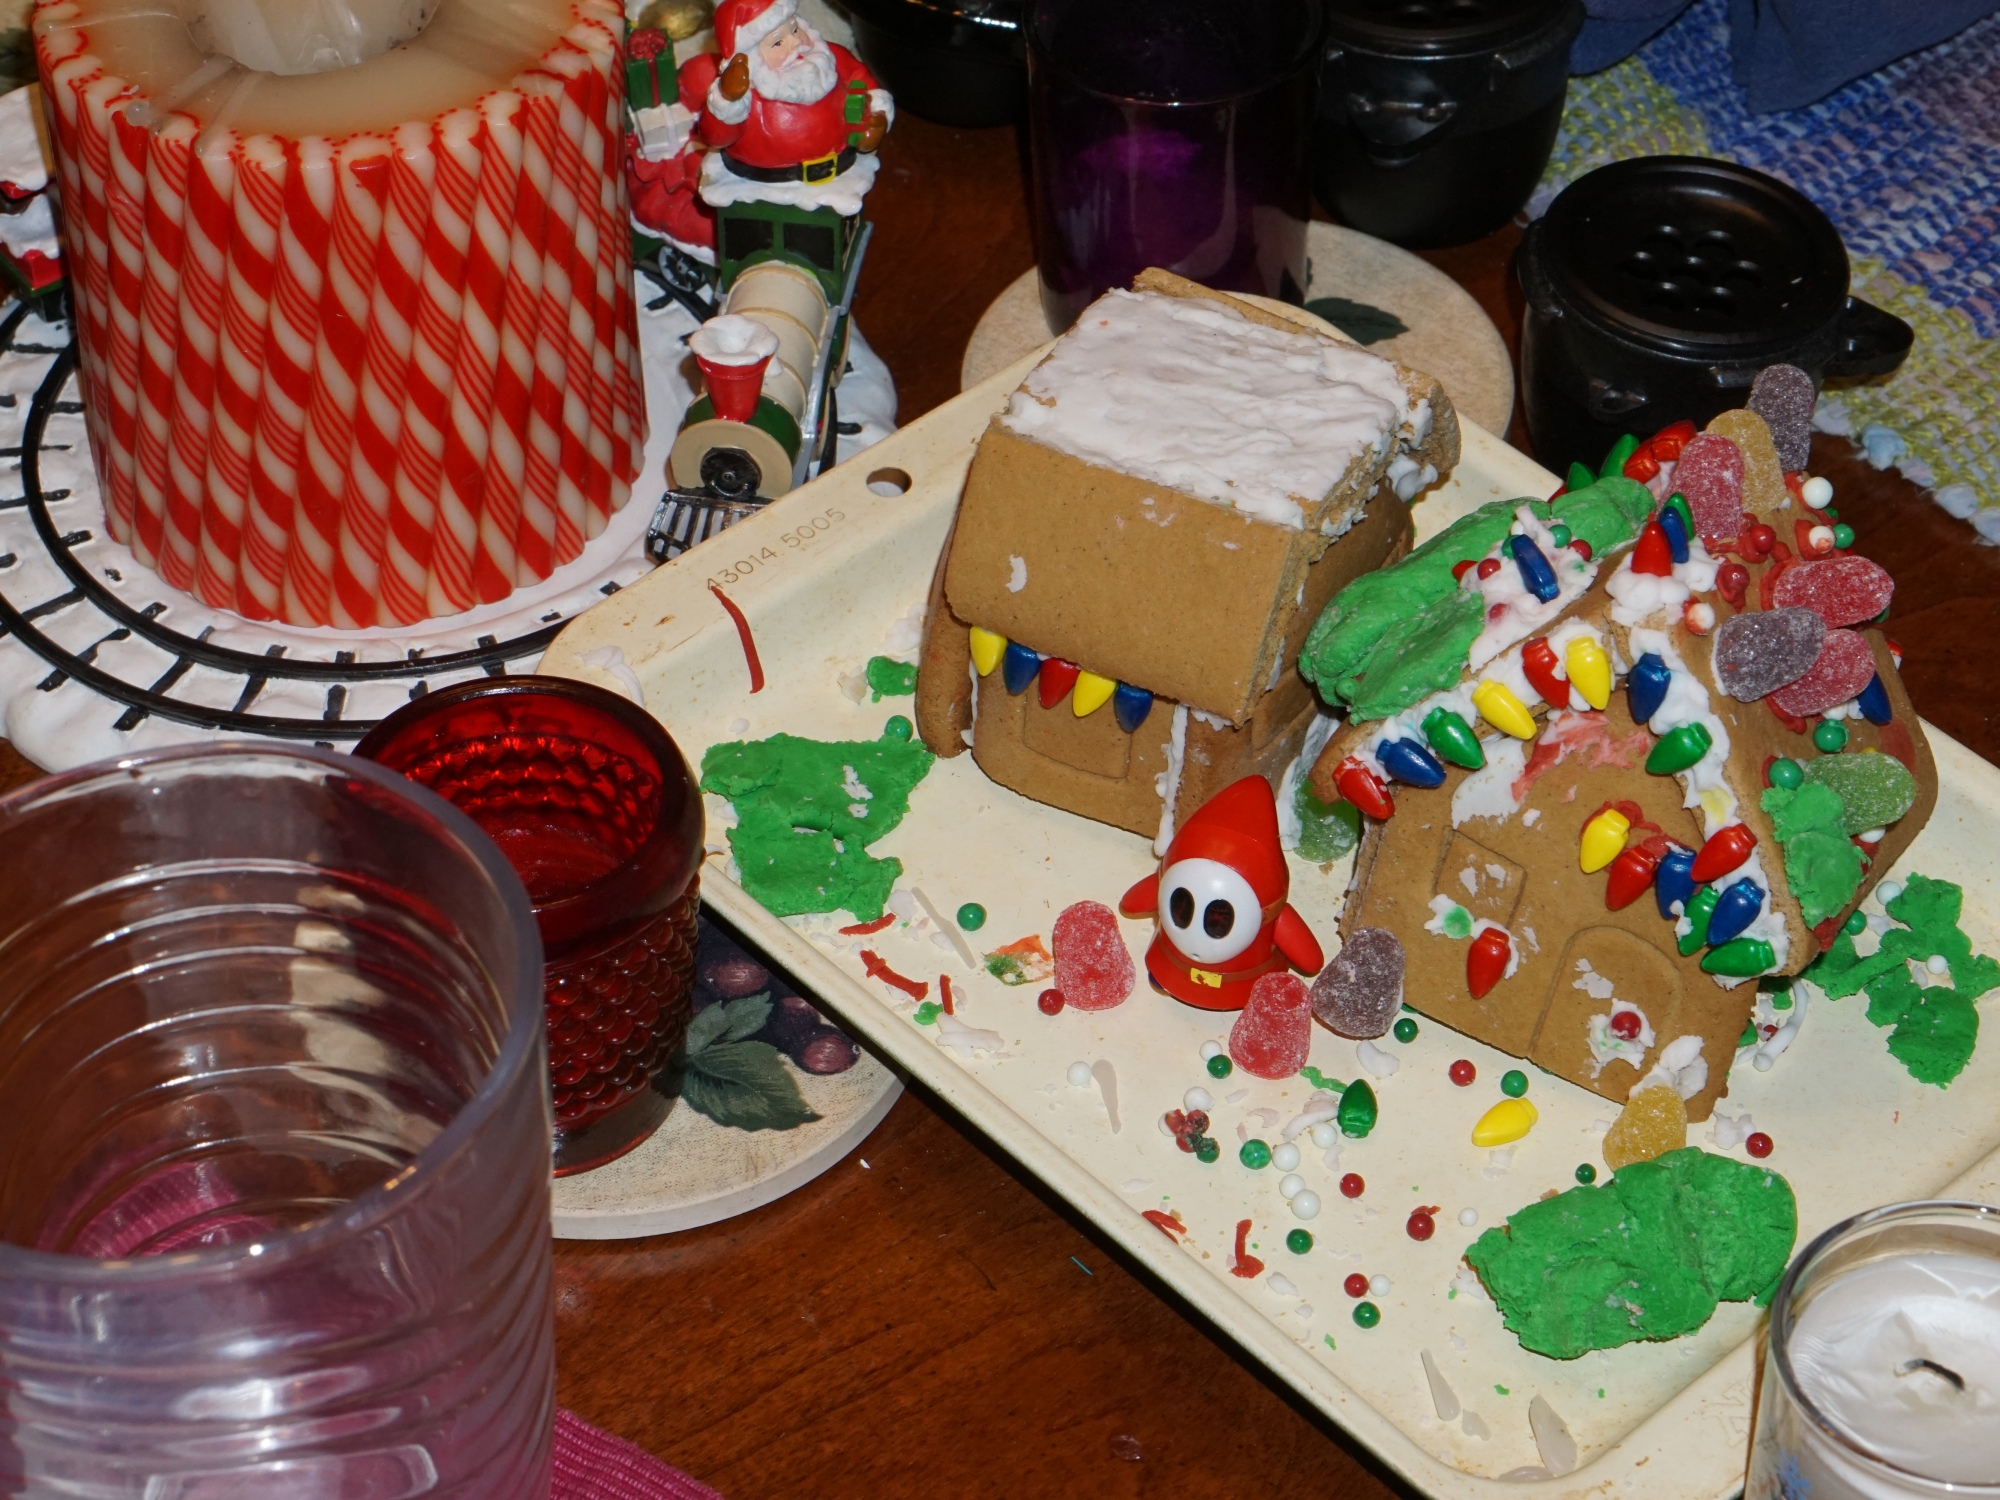 Image of dining room table with gingerbread house centerpiece and candles